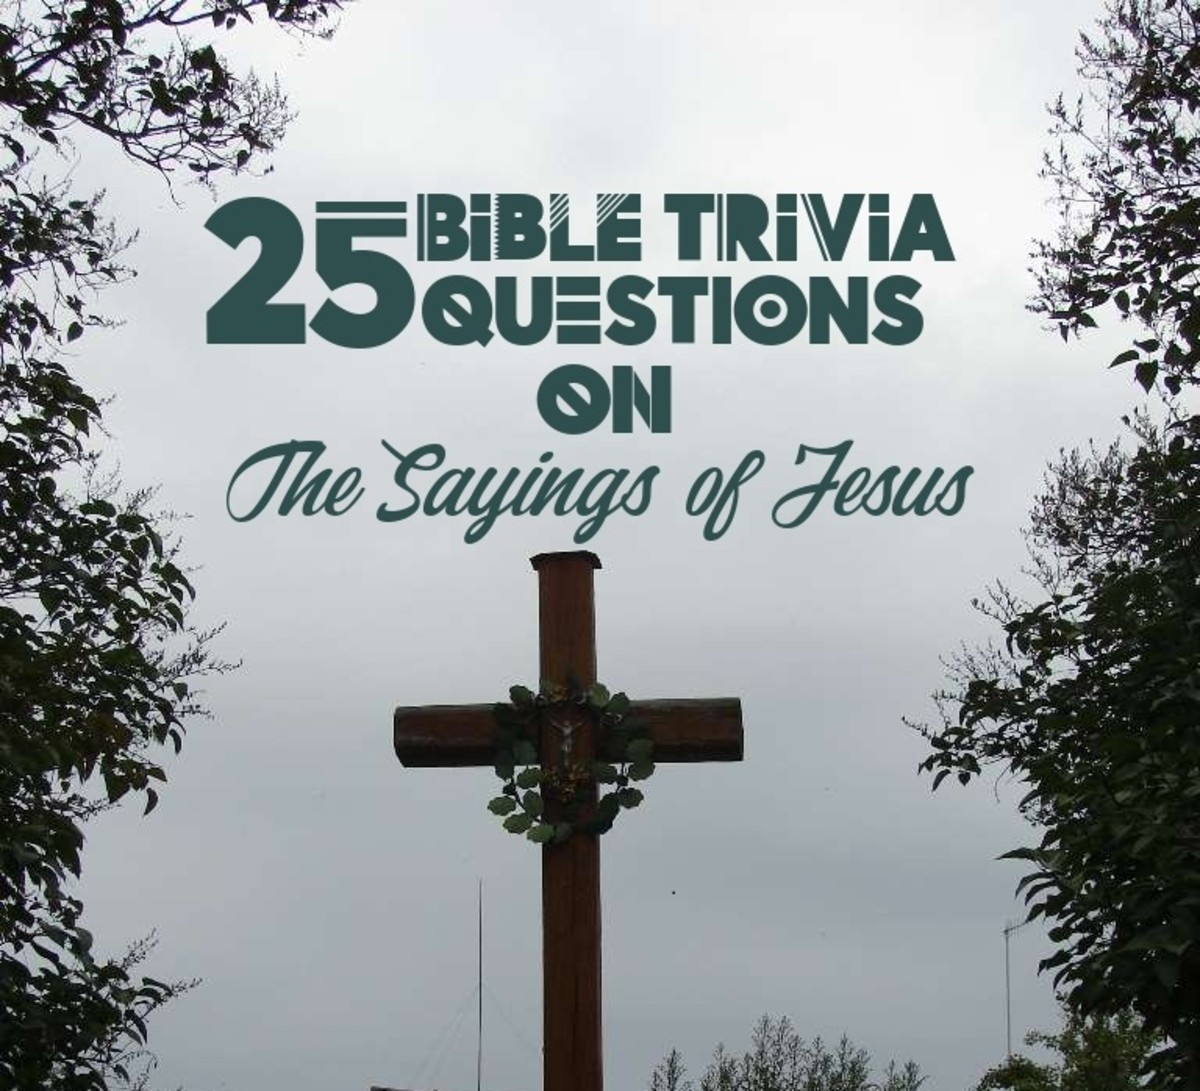 Trivia Questions on the Sayings of Jesus